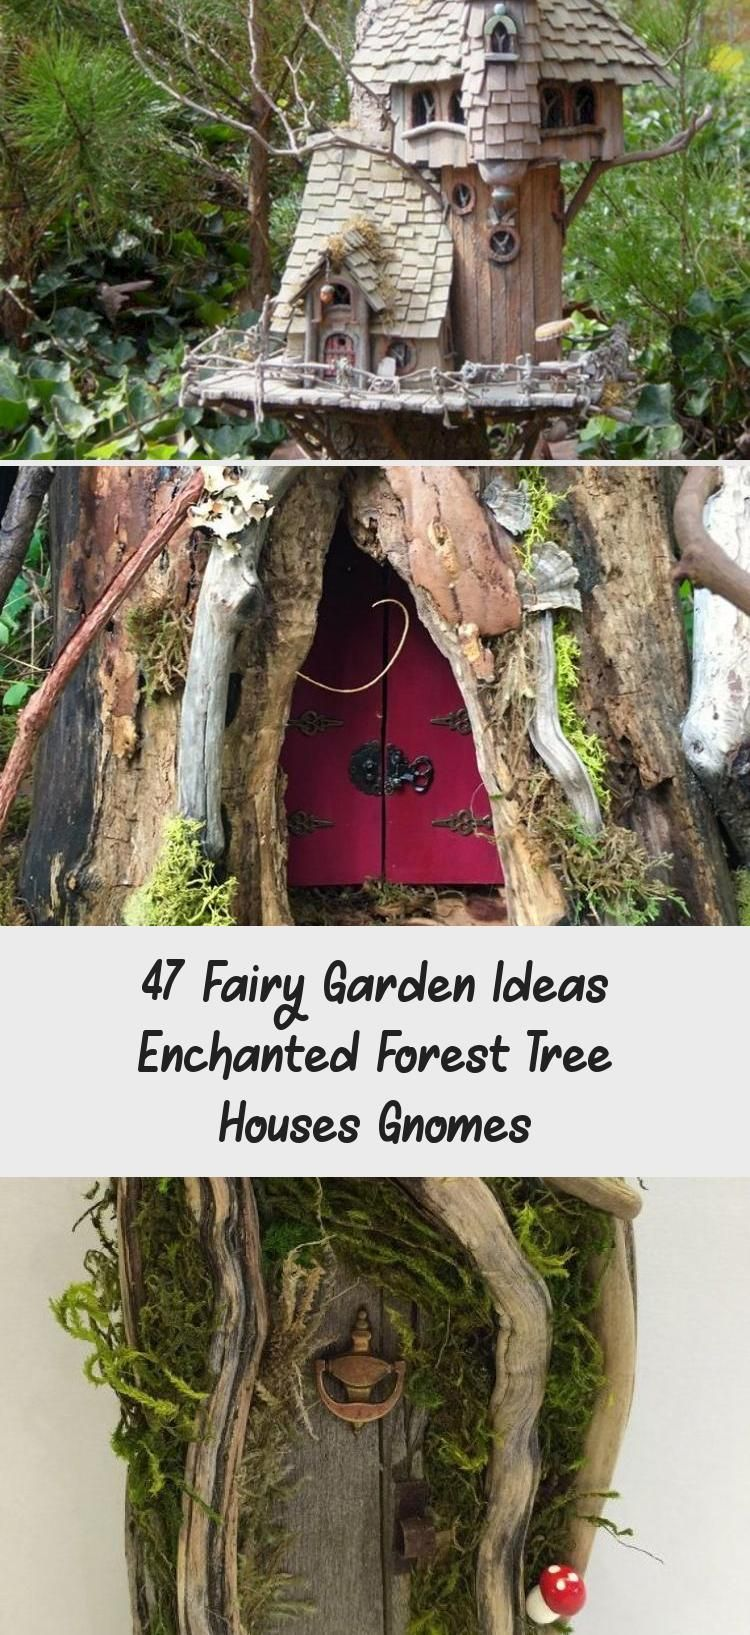 47 Fairy Garden Ideas Enchanted Forest Tree Houses Gnomes